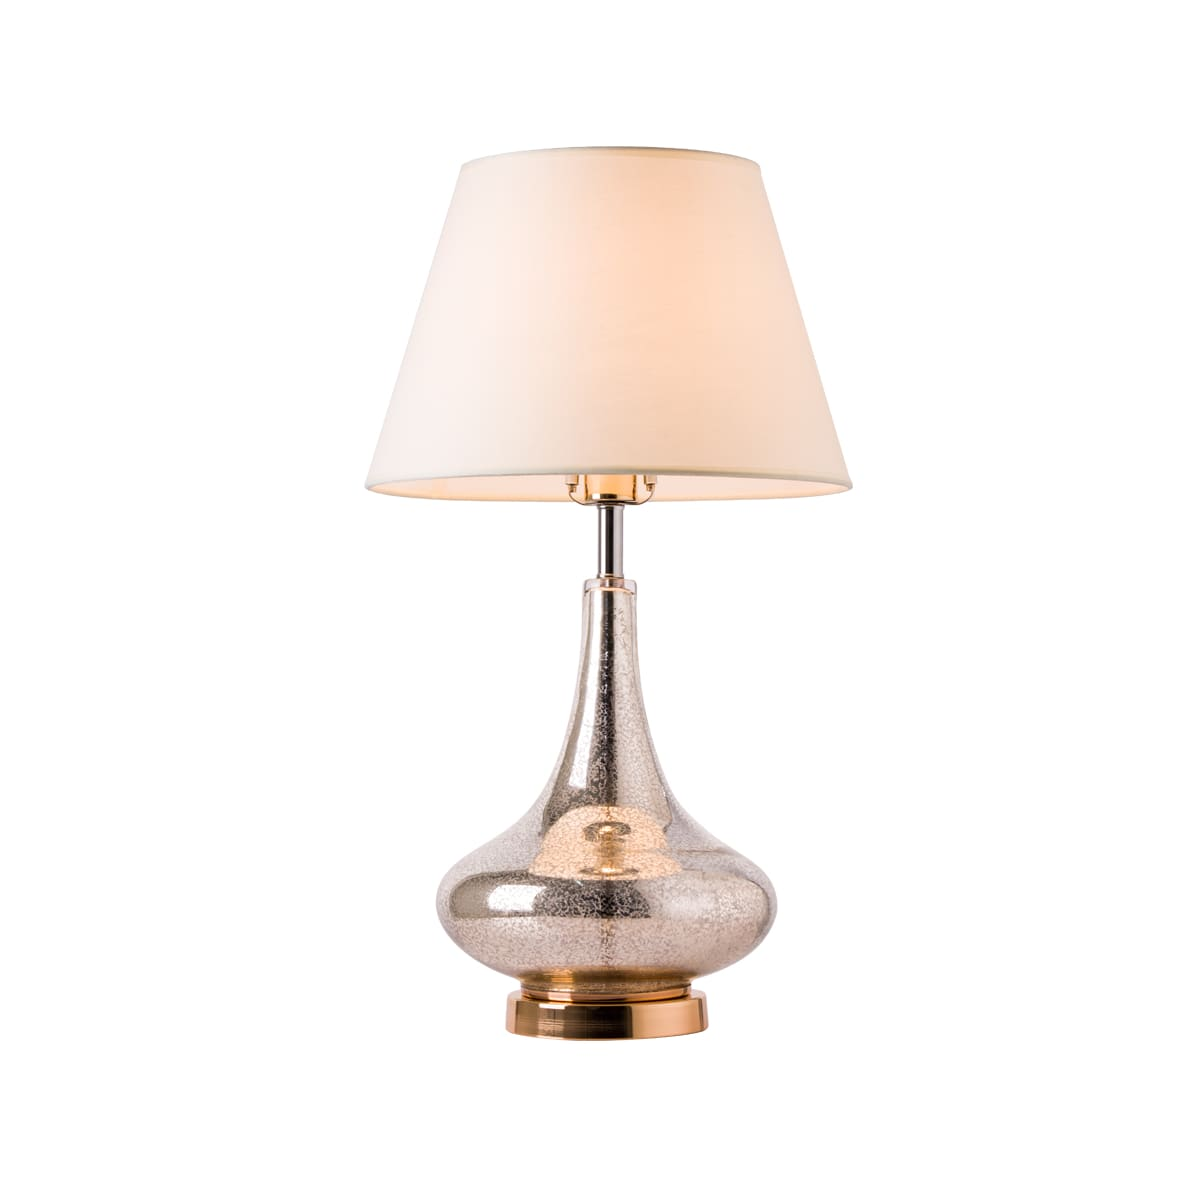 Bellevue T G25021a1 Gold Mercury Lotus 25 Tall Table Lamp Lightingdirect Com